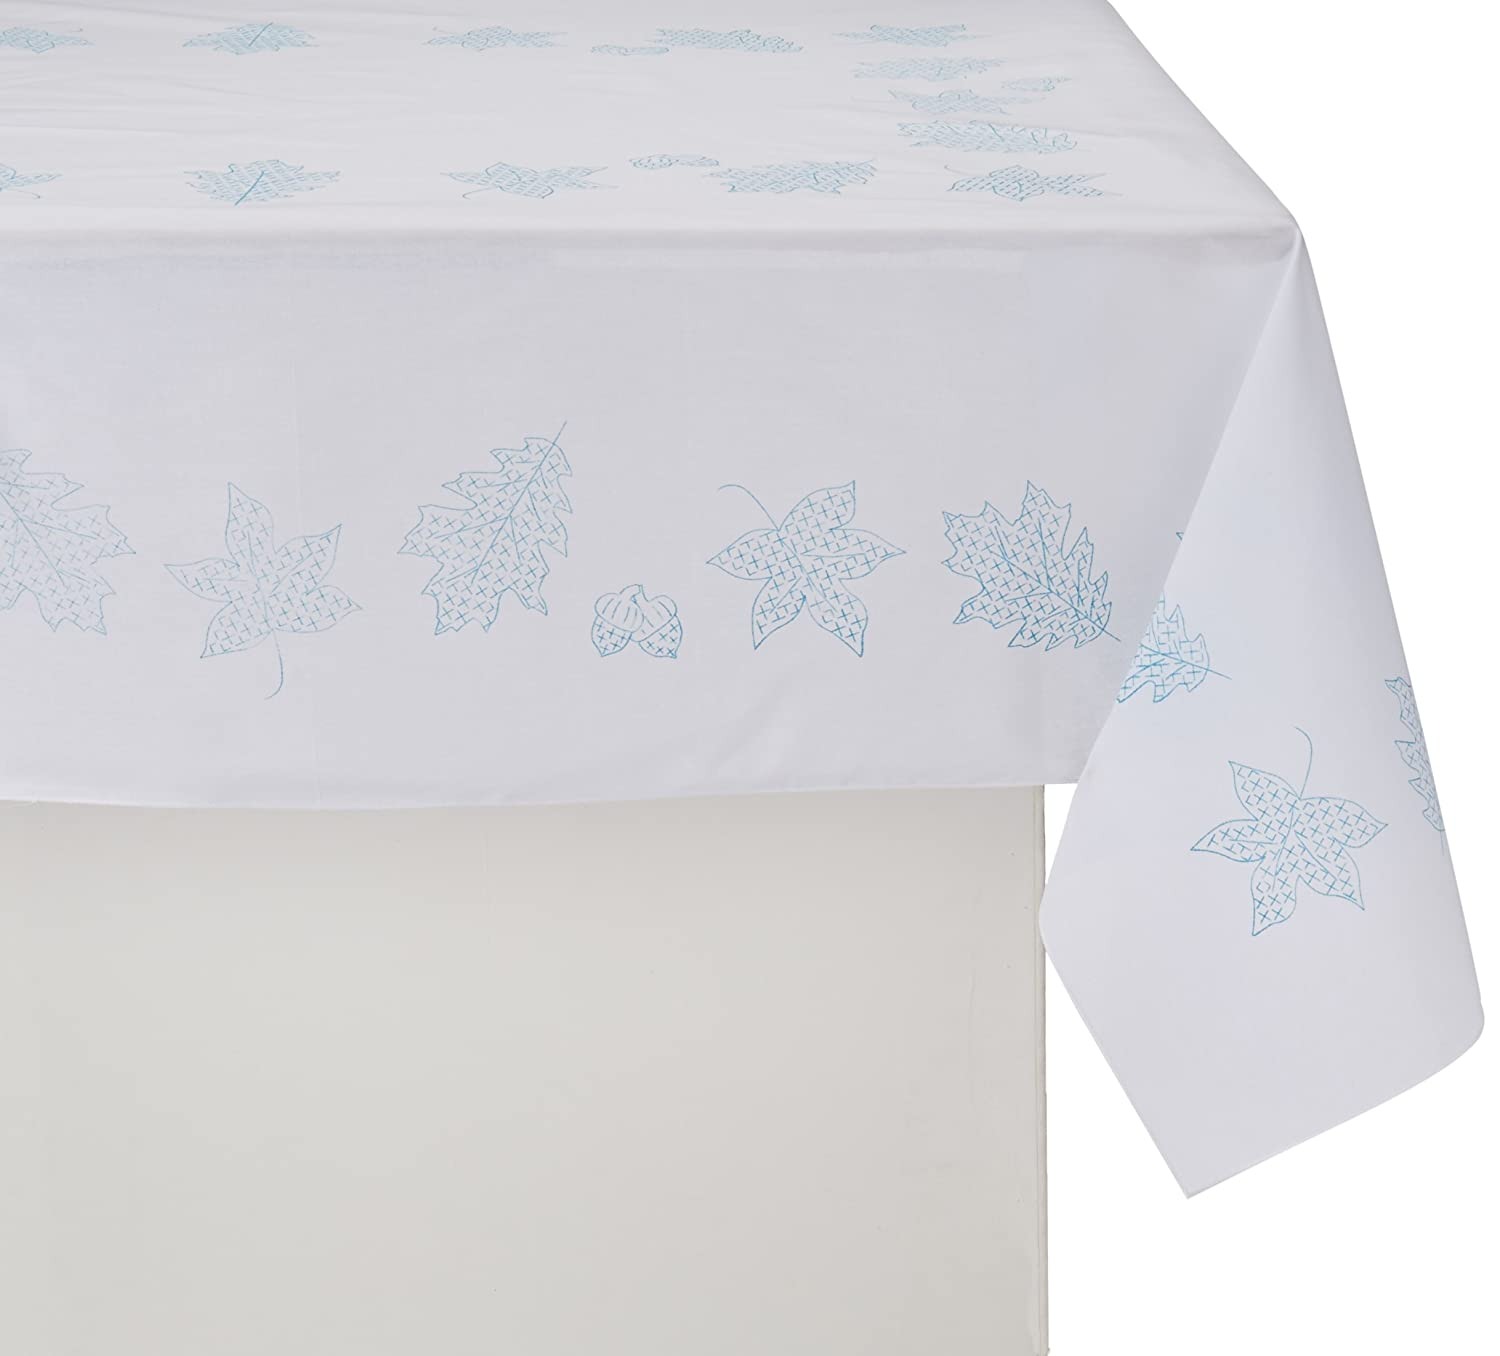 Jack Dempsey Stamped White Table Cloth Cross Stitch Kit, 50 by 70-Inch, Fall Leaves 551 492